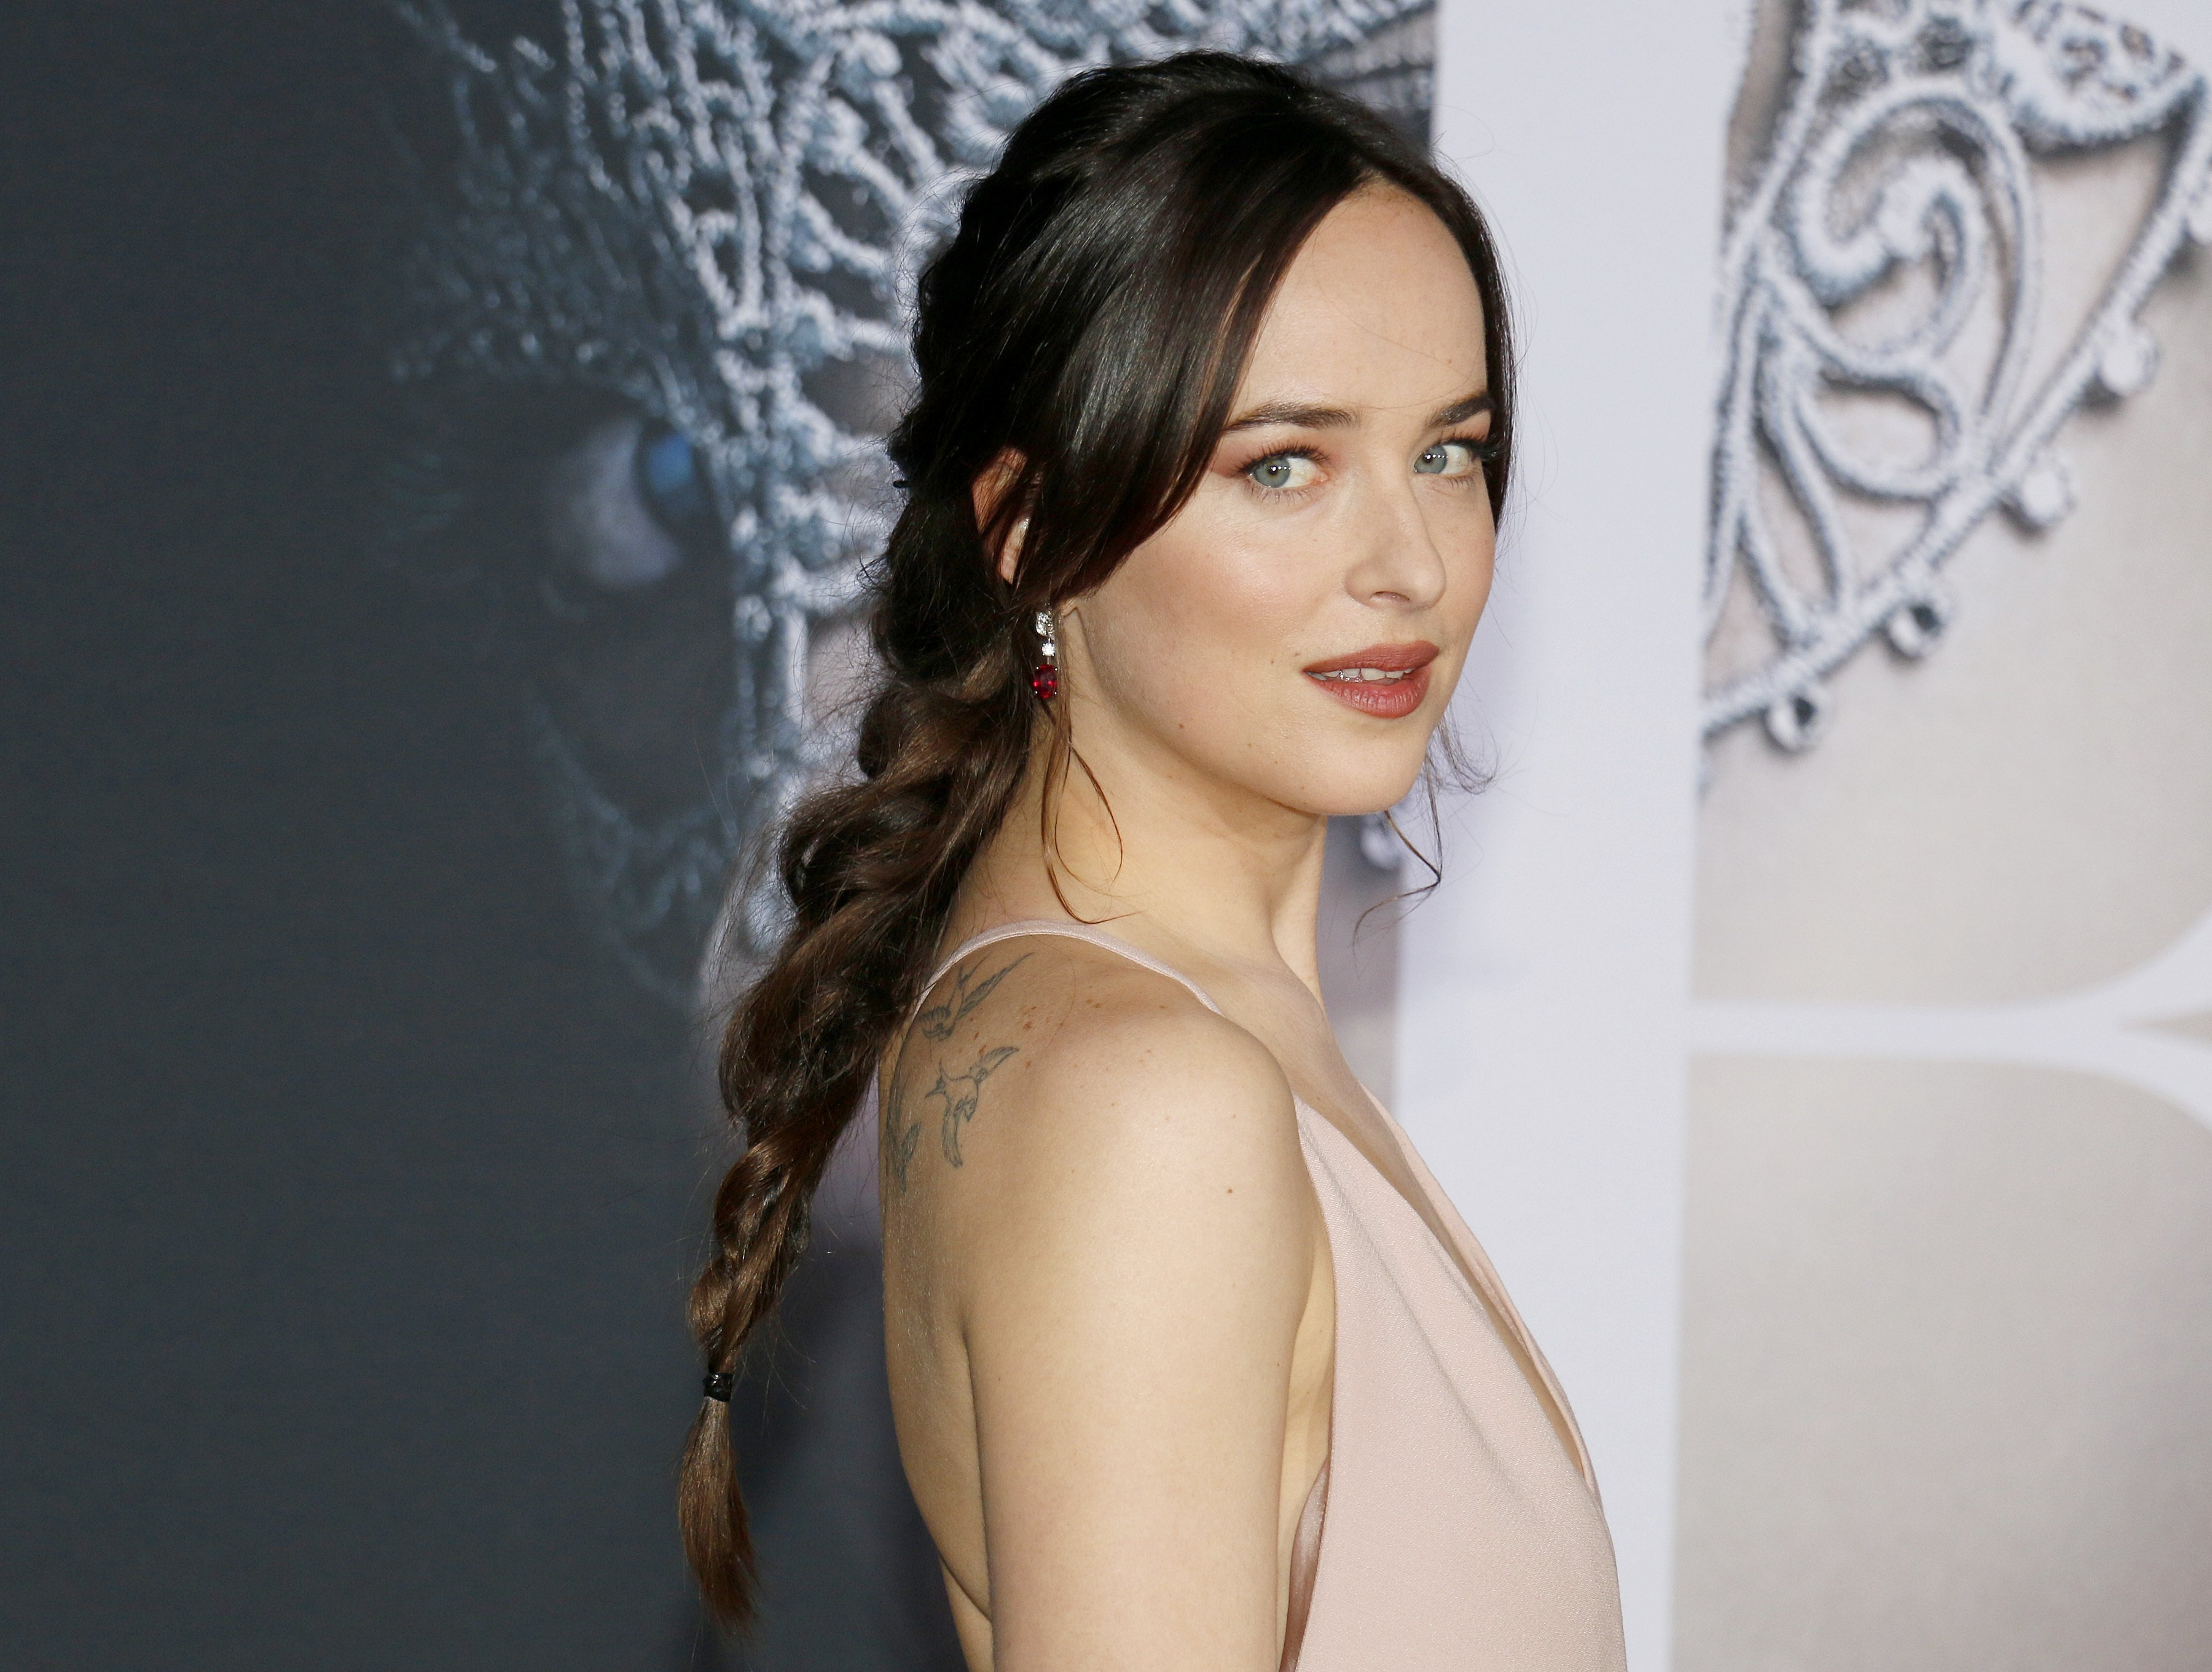 Dakota Johnson pictured at the Los Angeles premiere of 'Fifty Shades Darker' at the Theatre at Ace Hotel, Los Angeles, 2017. | Photo: Getty Images